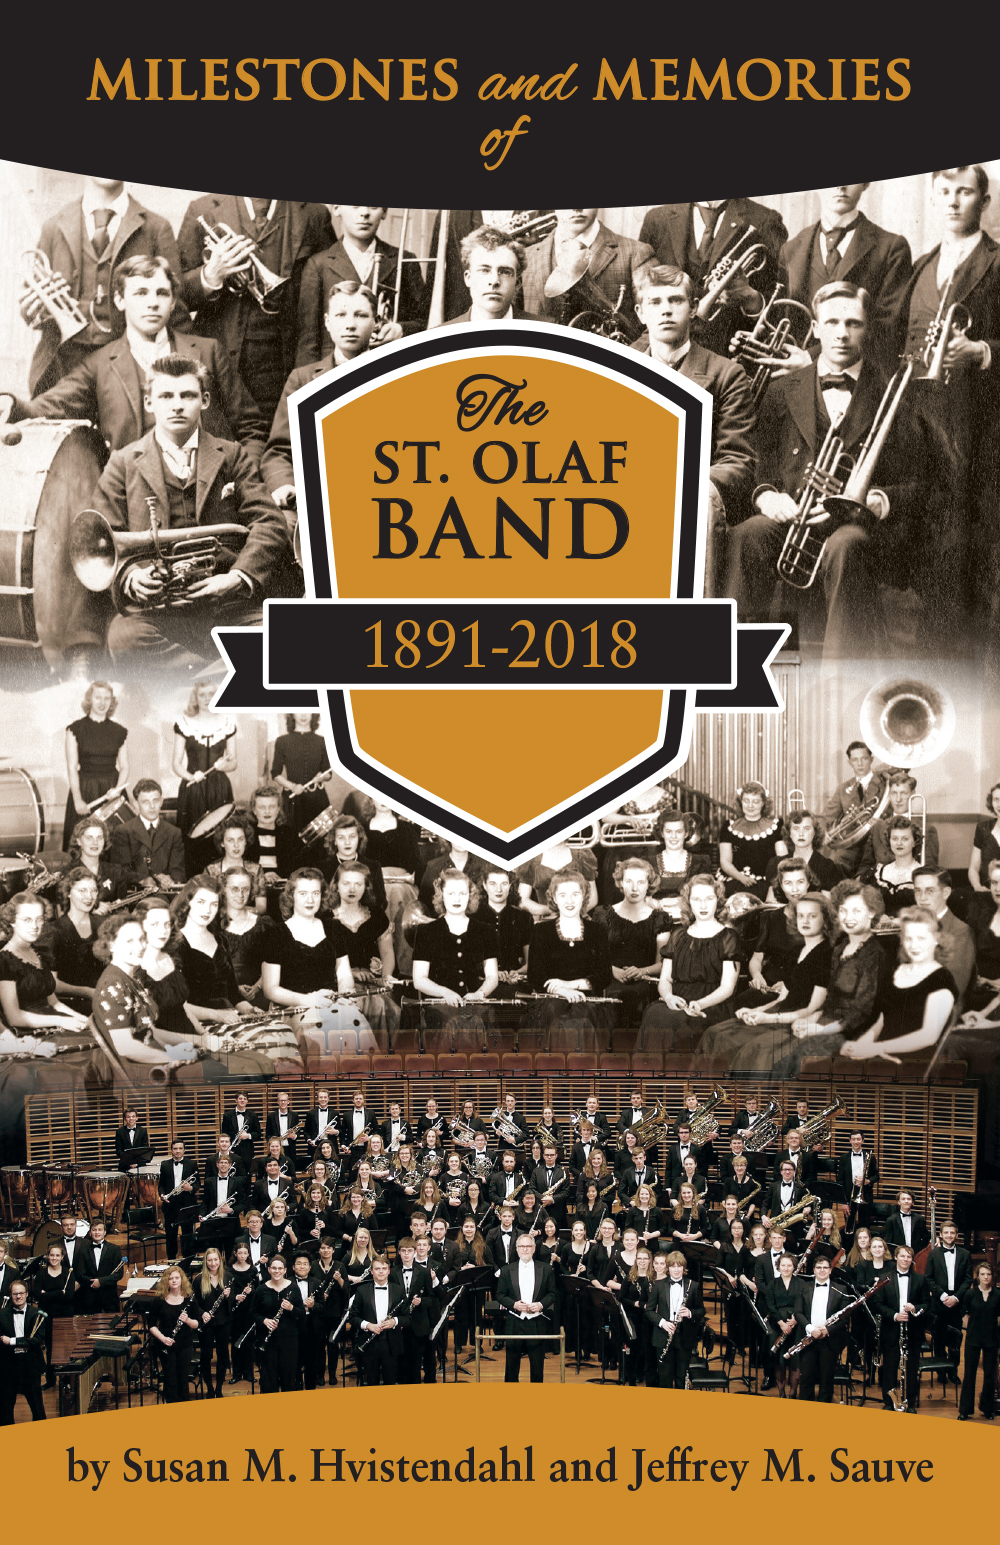 Milestones & Memories of the St. Olaf Band 1891-2018